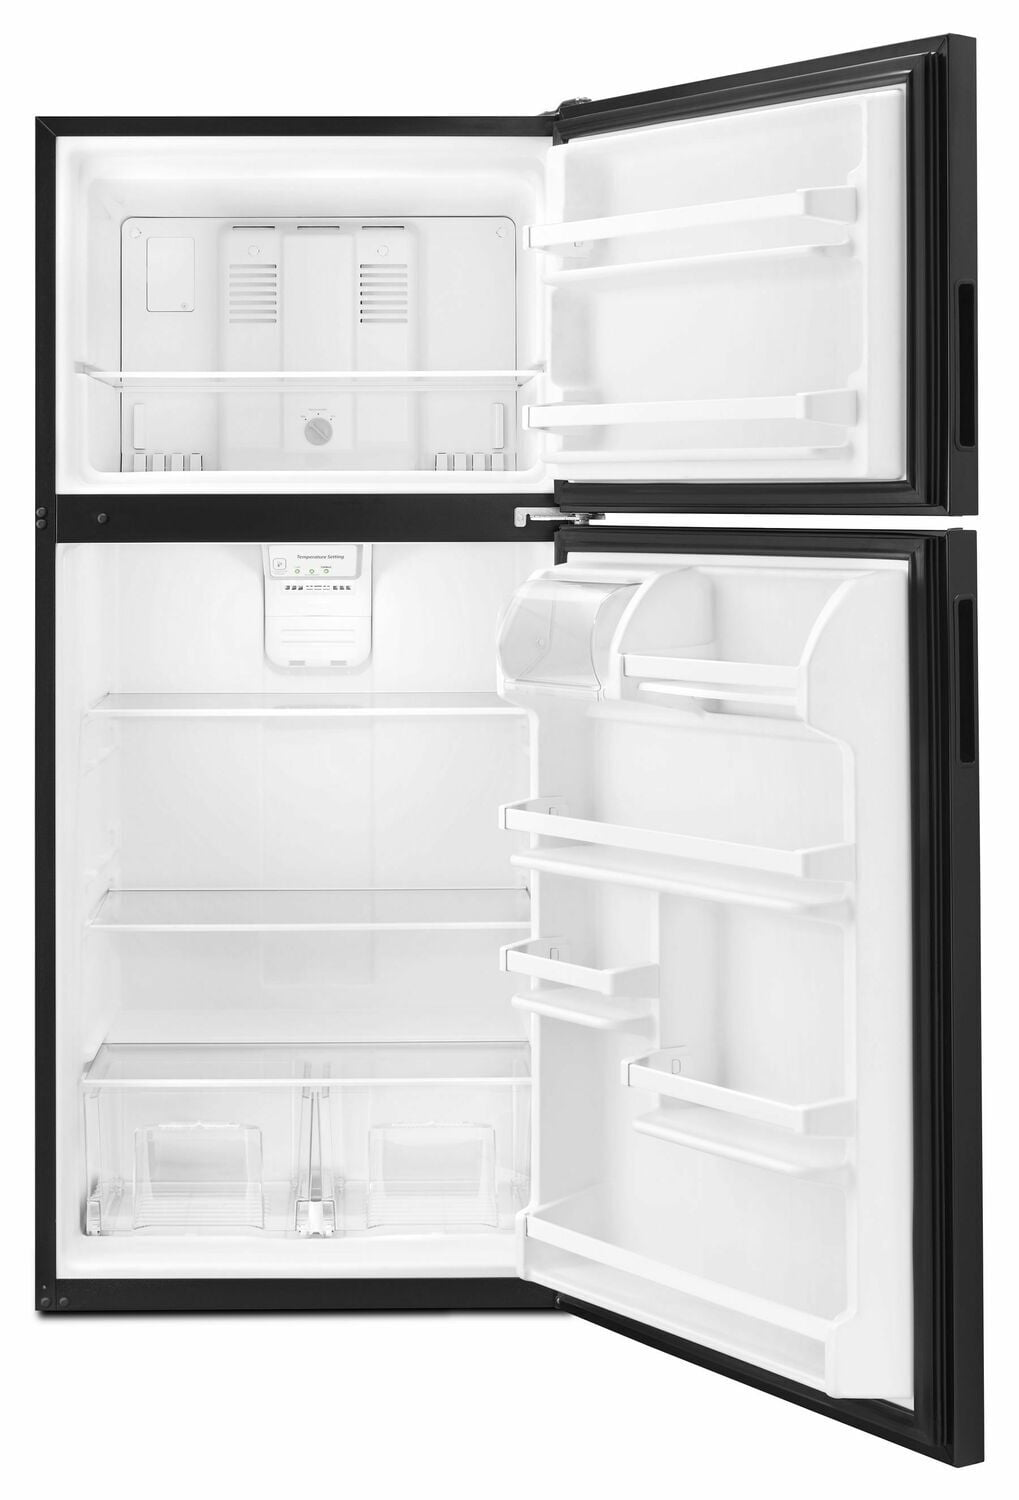 Load image into Gallery viewer, Amana ART318FFDB 30-Inch Amana® Top-Freezer Refrigerator With Glass Shelves - Black